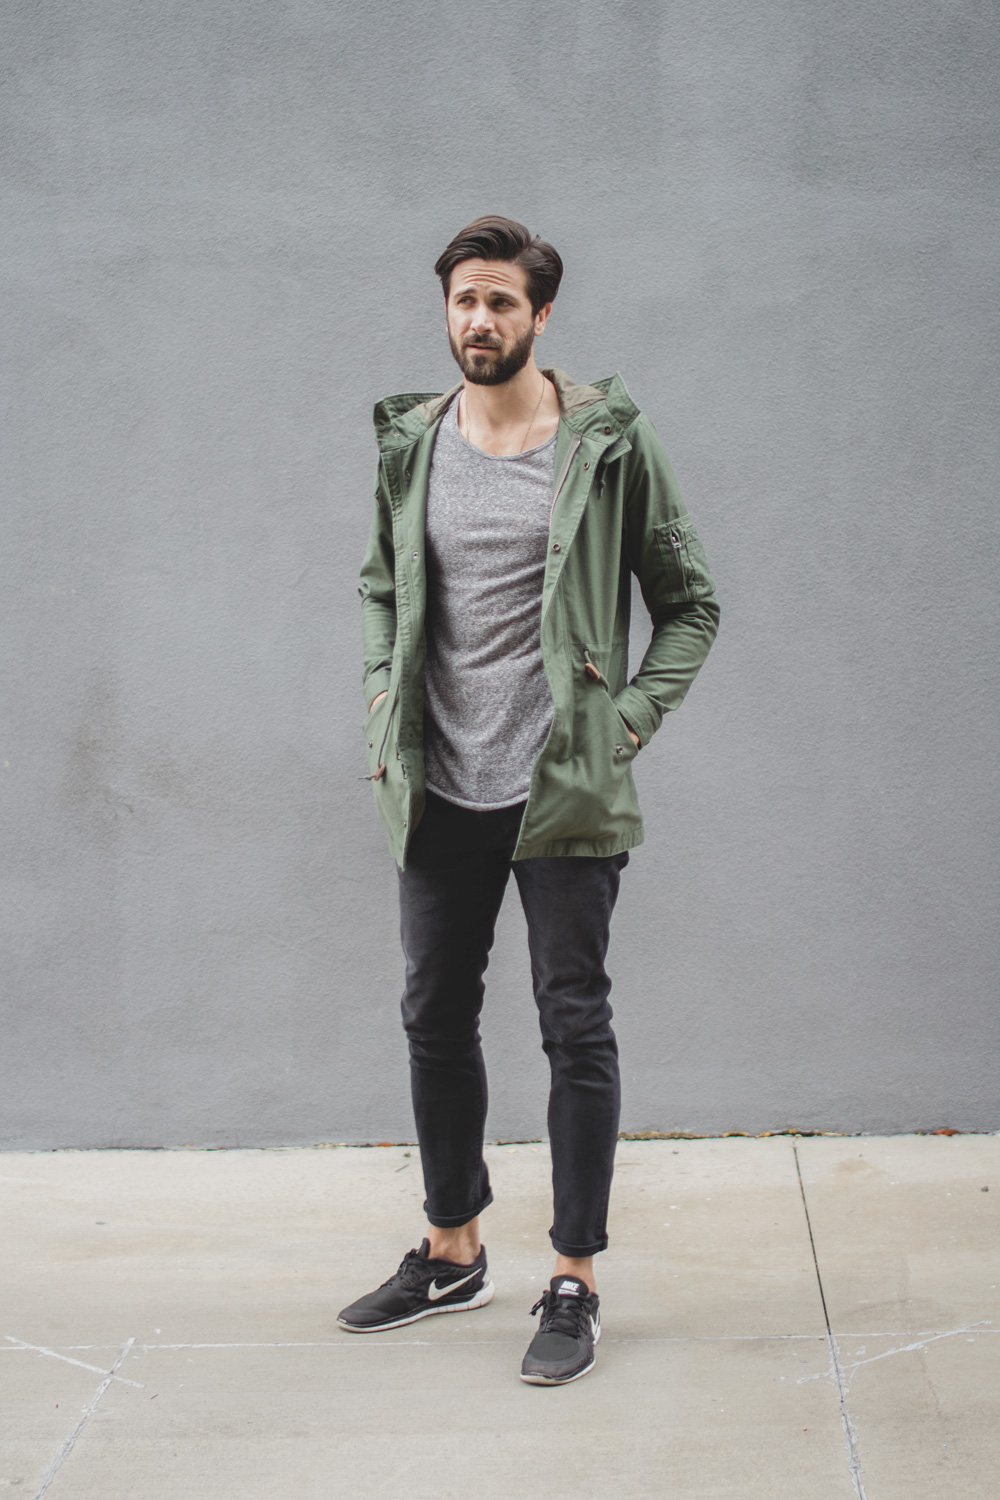 alpha industries jacket - gray shirt - gray jeans - nike sneakers